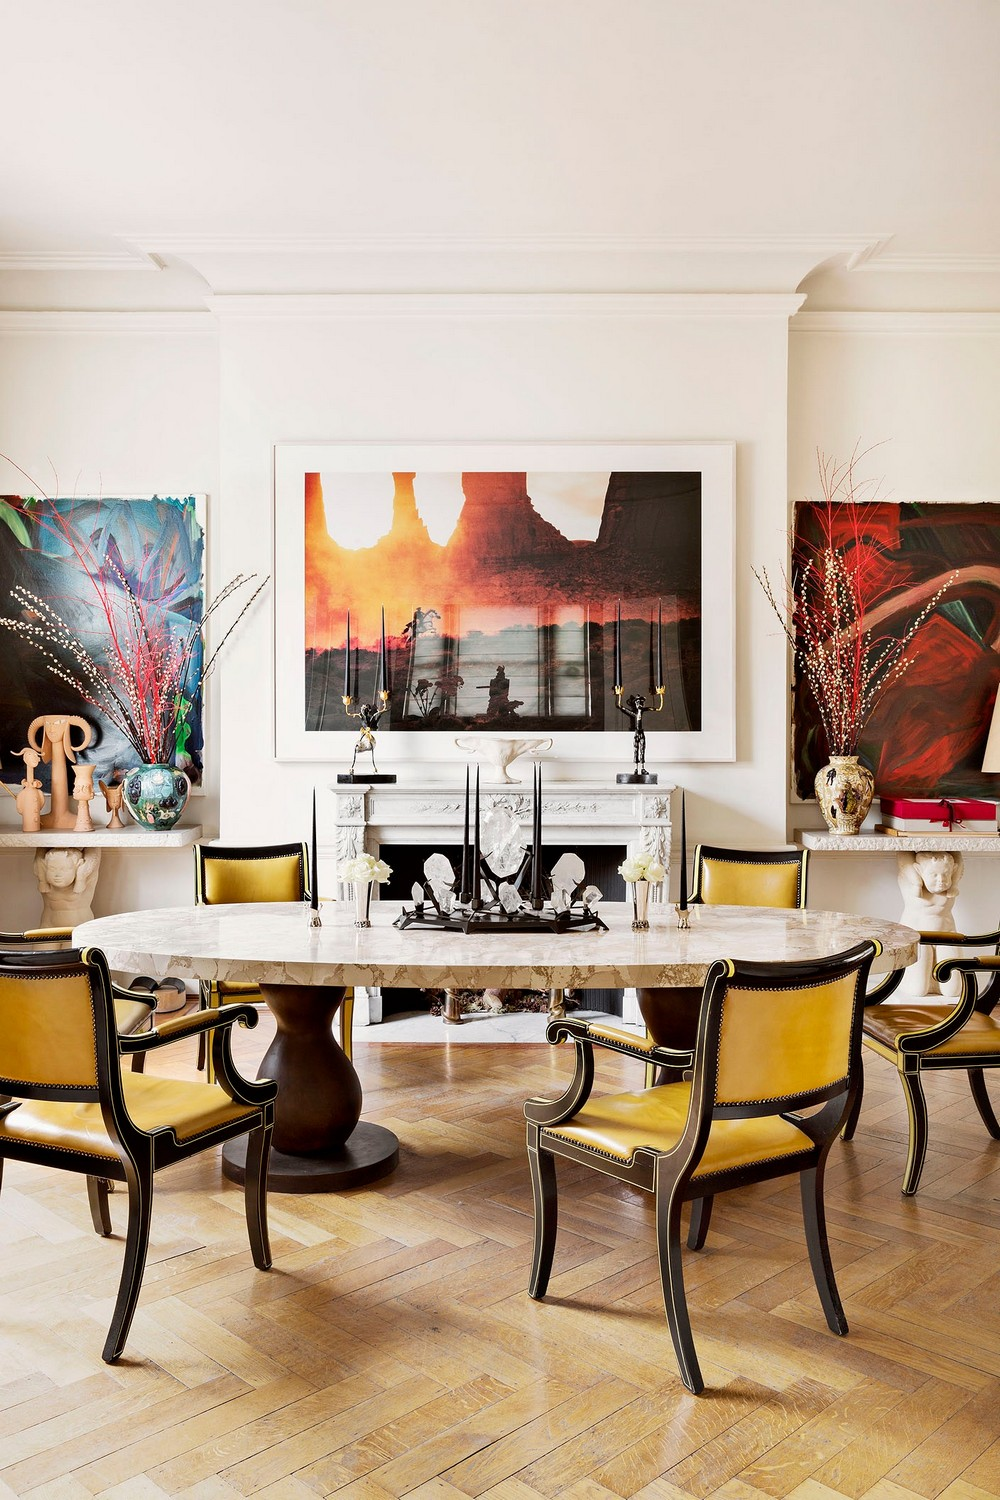 Dining Room Projects by Francis Sultana  Dining Room Projects by Francis Sultana 7 10